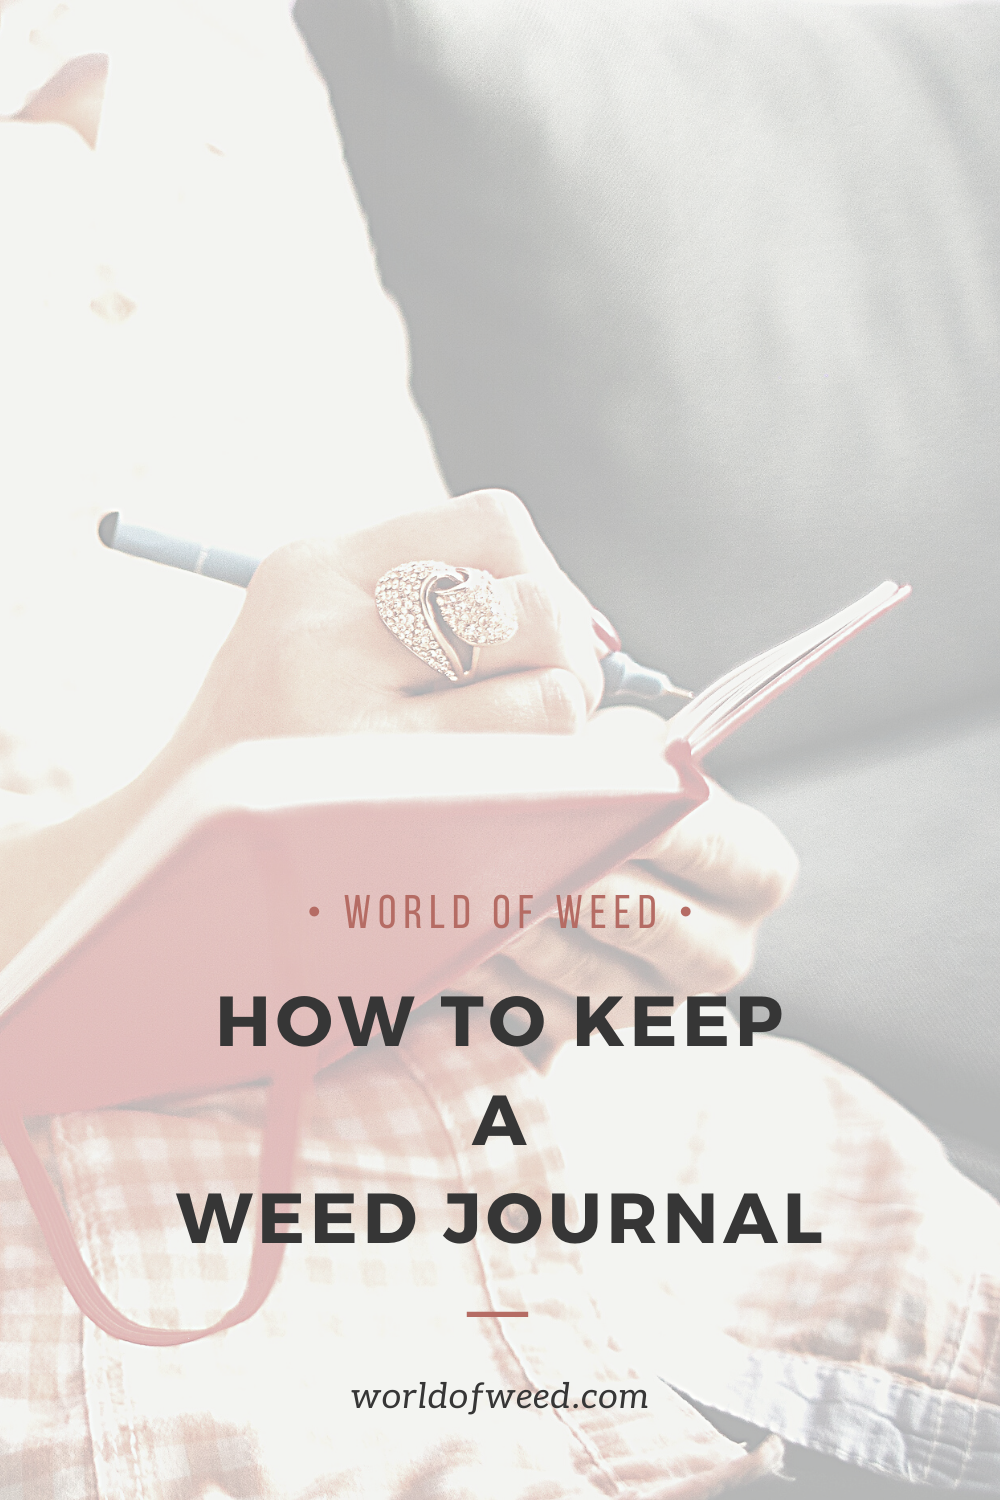 Starting and Keeping a Weed Journal